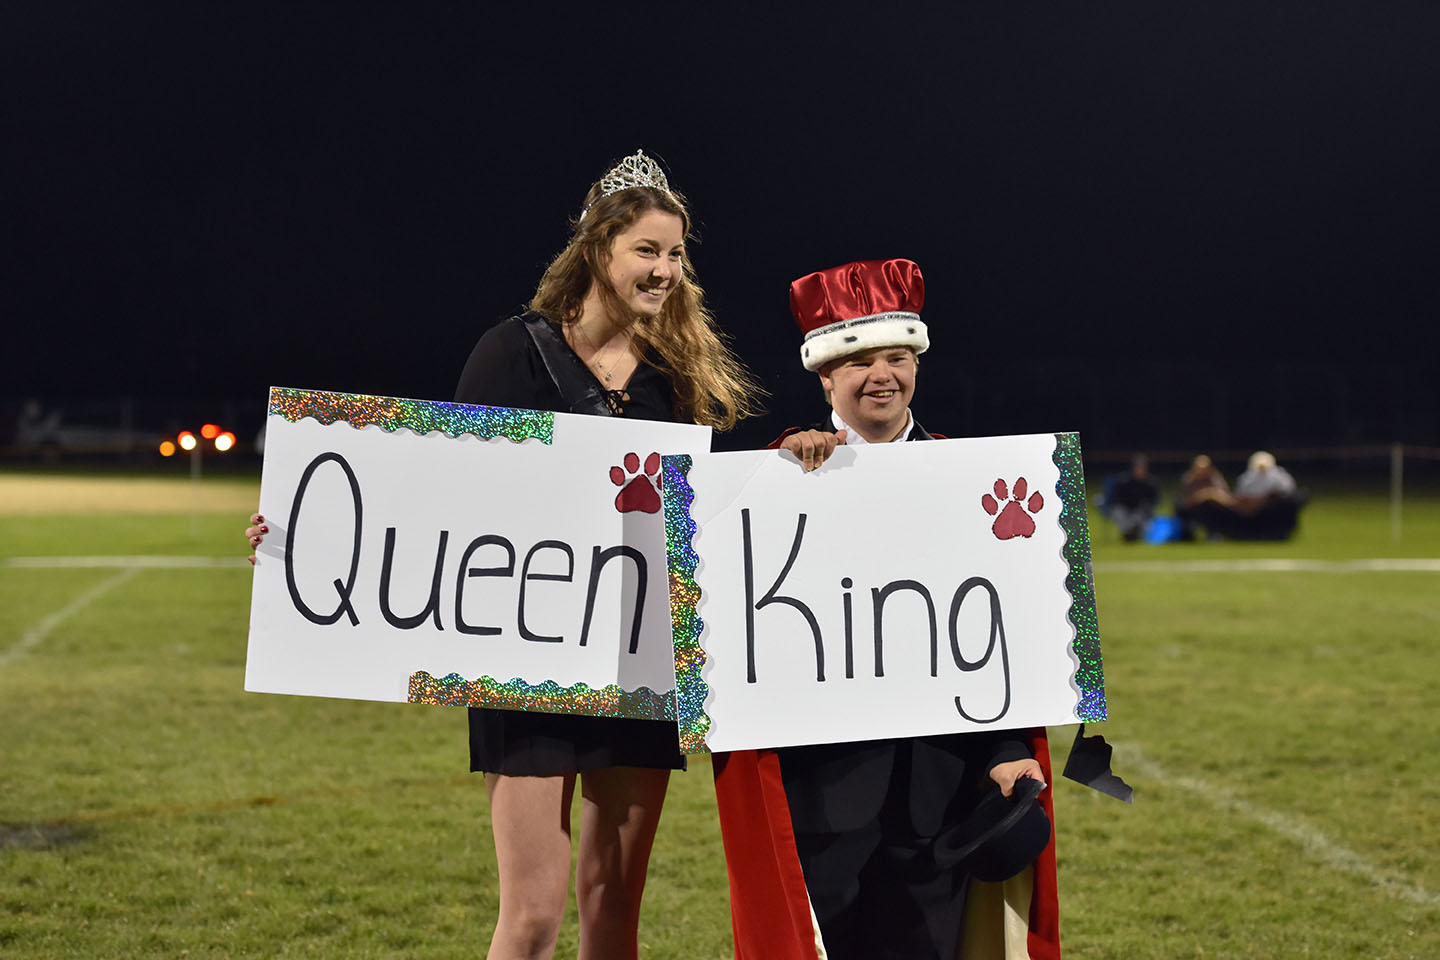 Grace+Hicks+and+Eliyah+Allen+win+Homecoming+Royalty.+